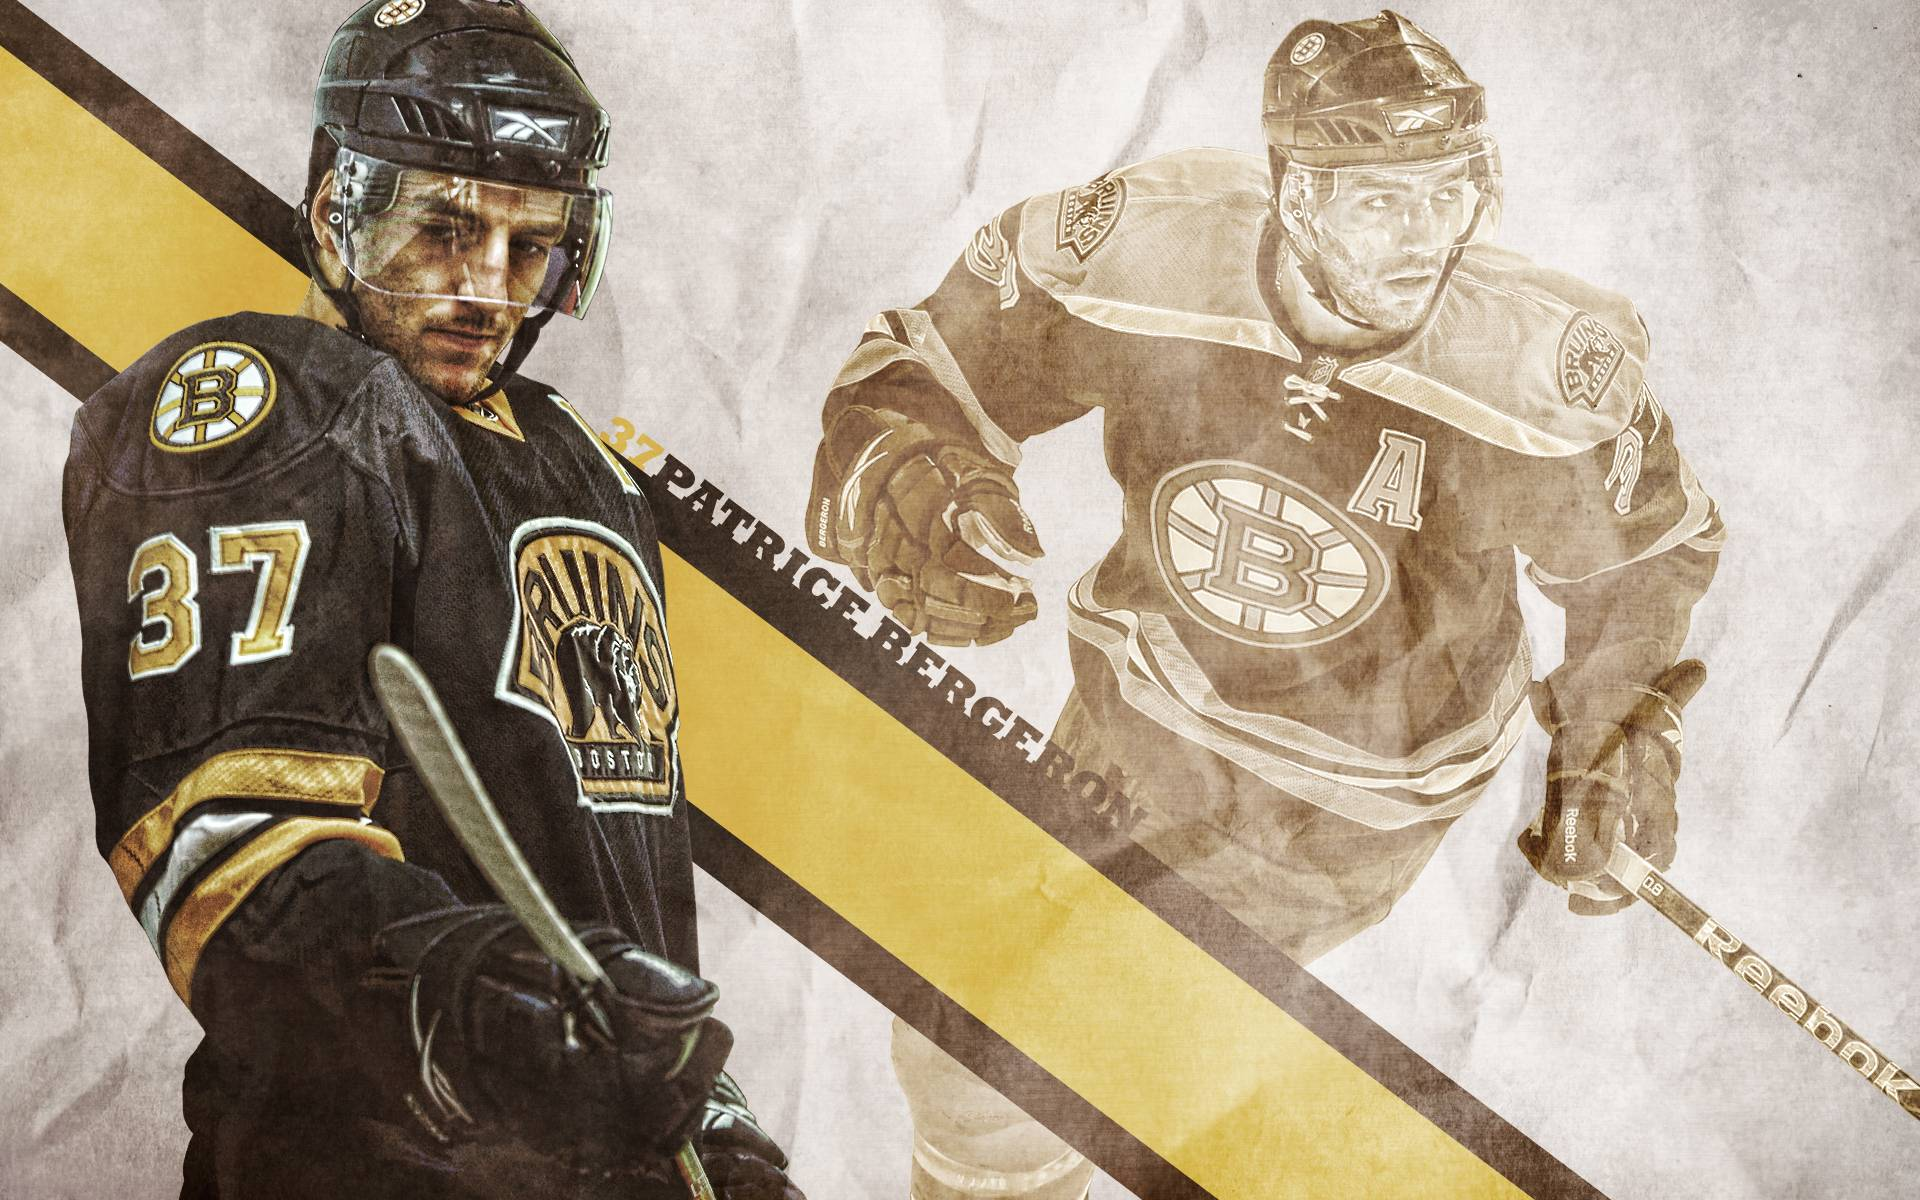 Boston Bruins HD images | Boston Bruins wallpapers